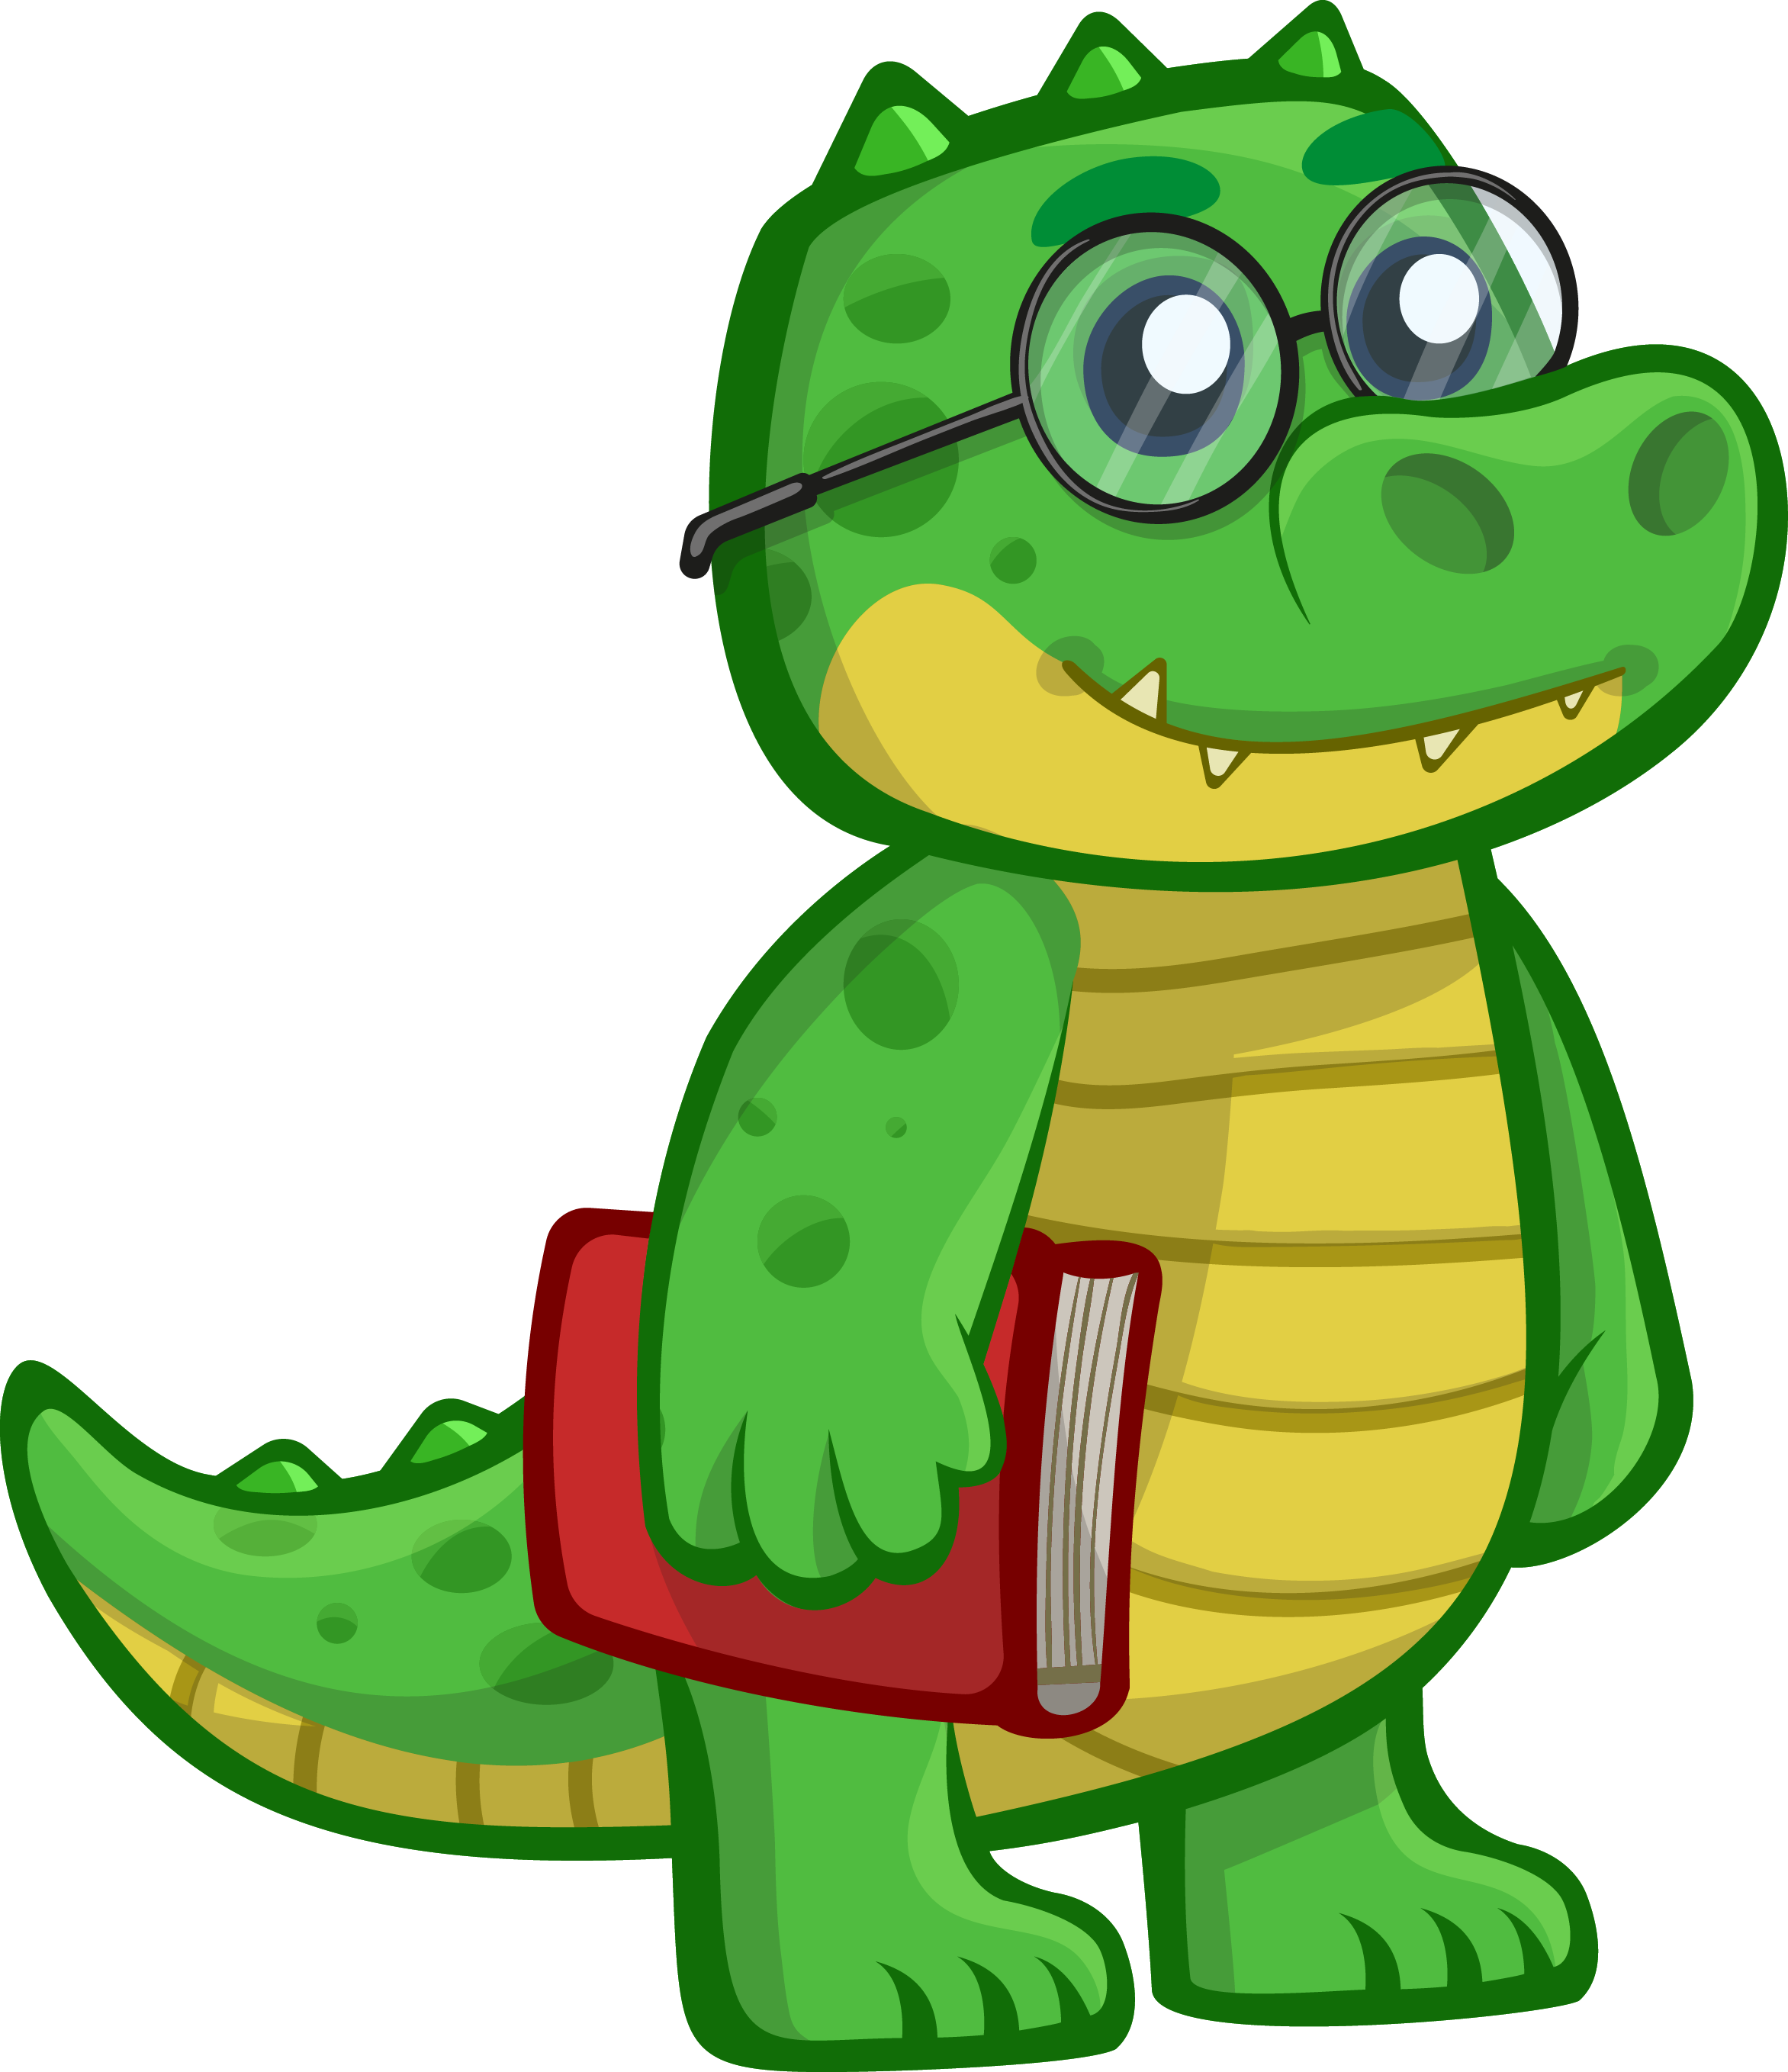 Cartoon Gator Clipart | Free download on ClipArtMag